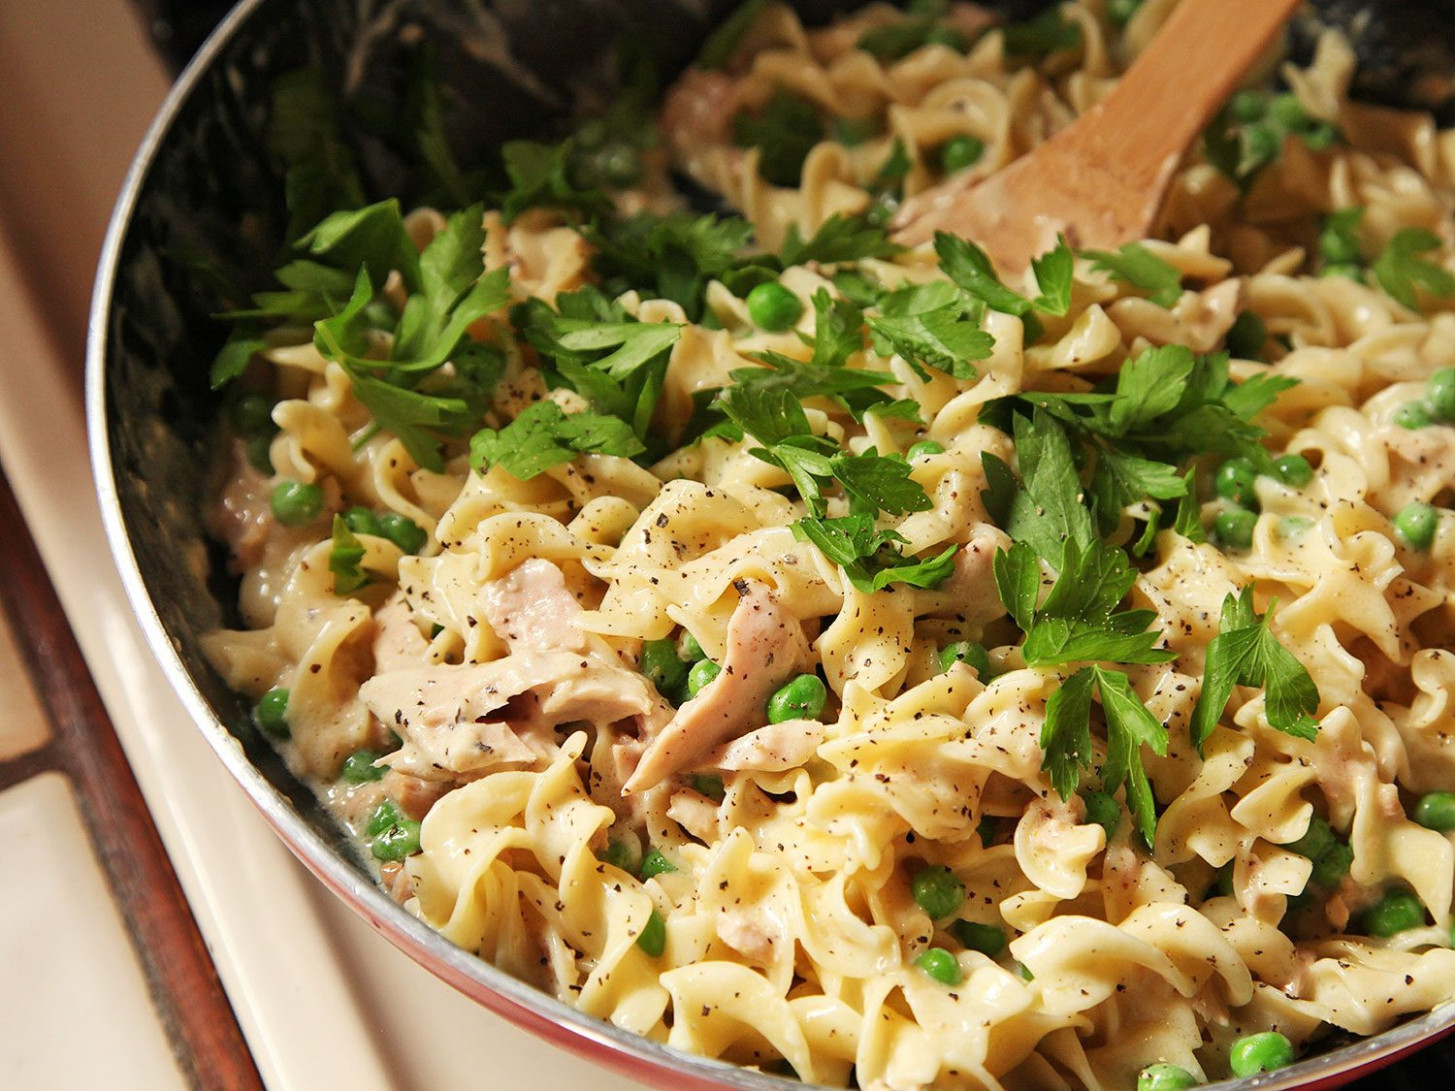 Easy One Pot, No Knife, Lighter Tuna Noodle Casserole Recipe